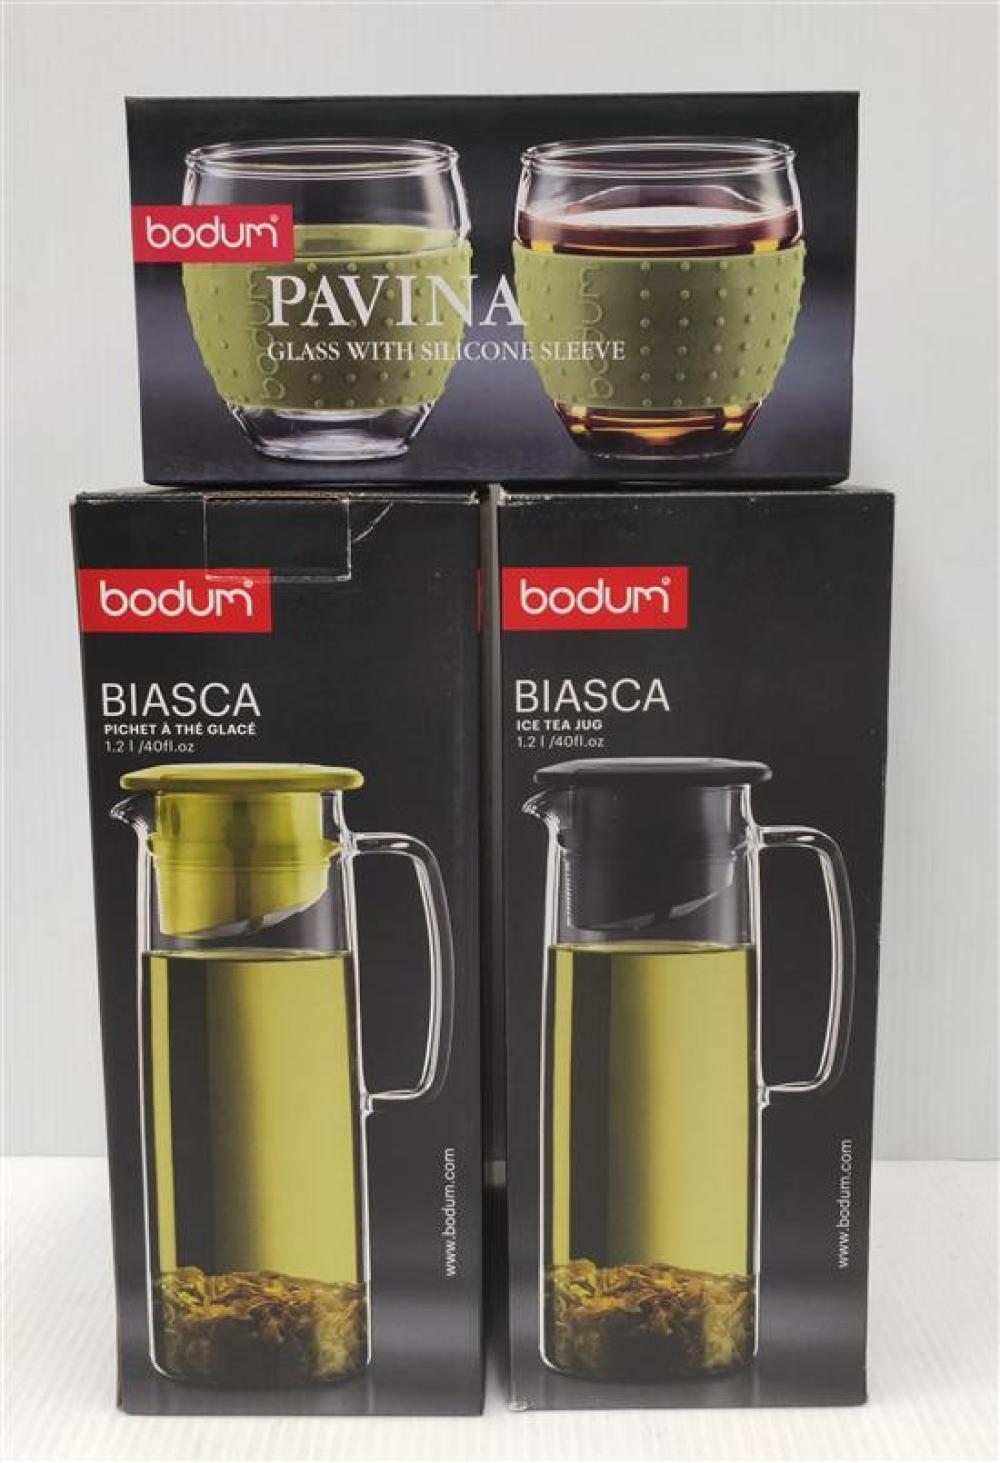 Two Bodum Biasca Ice Tea Jugs & A Set of Pavina Glasses with Silicone Sleeve, All in Green